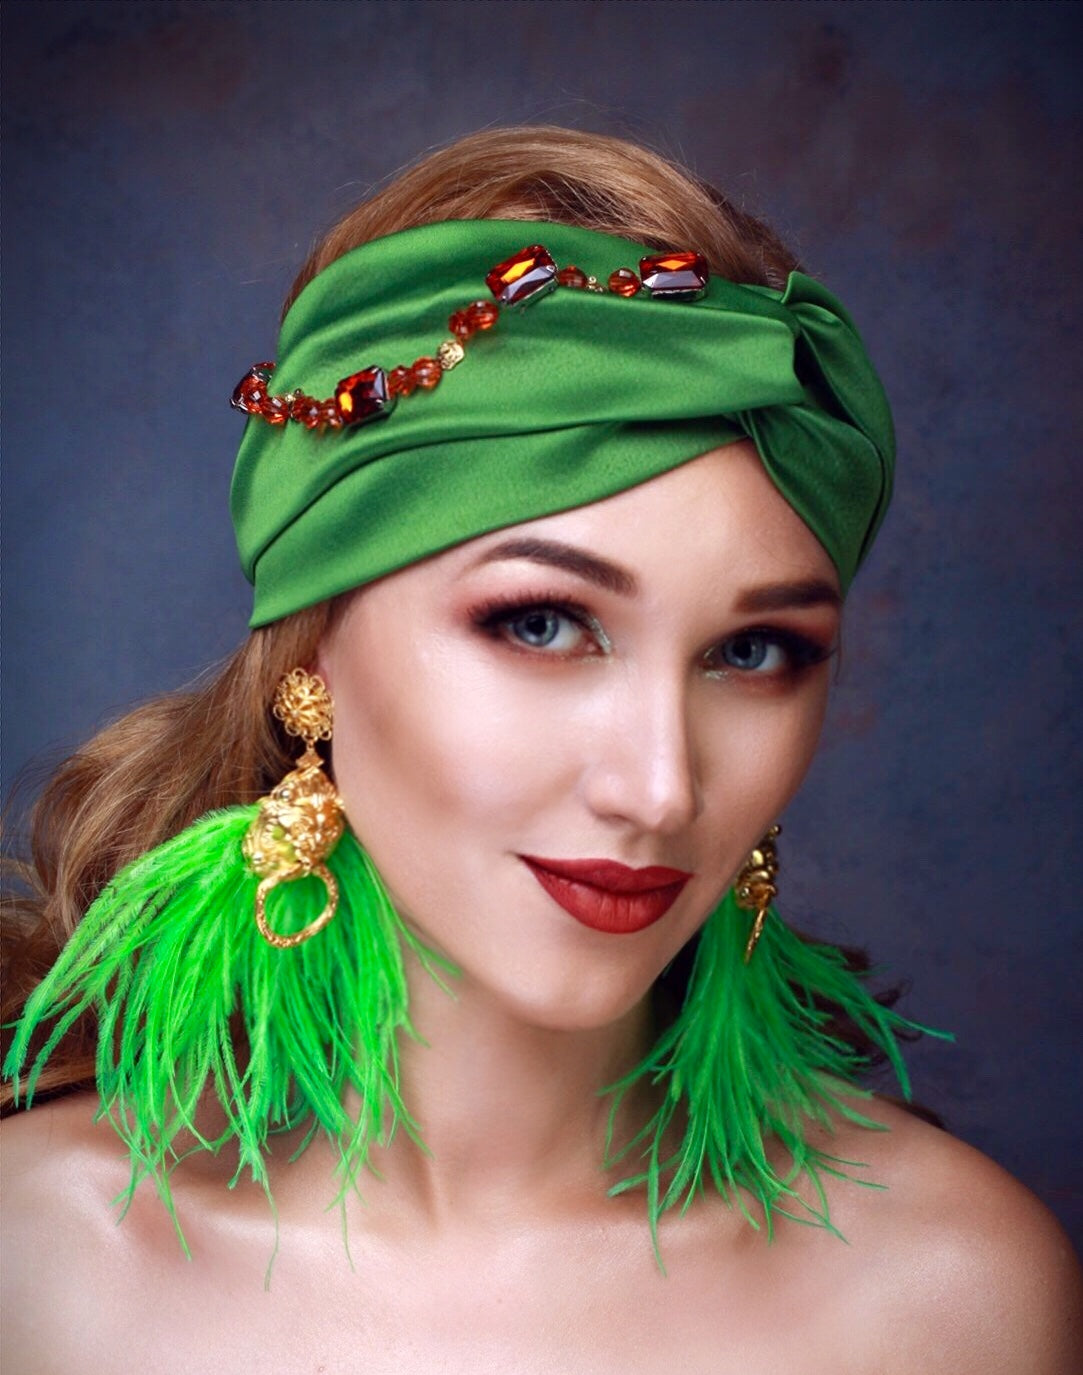 EVONNE Green Turban Hat 8bb40ec0ec8